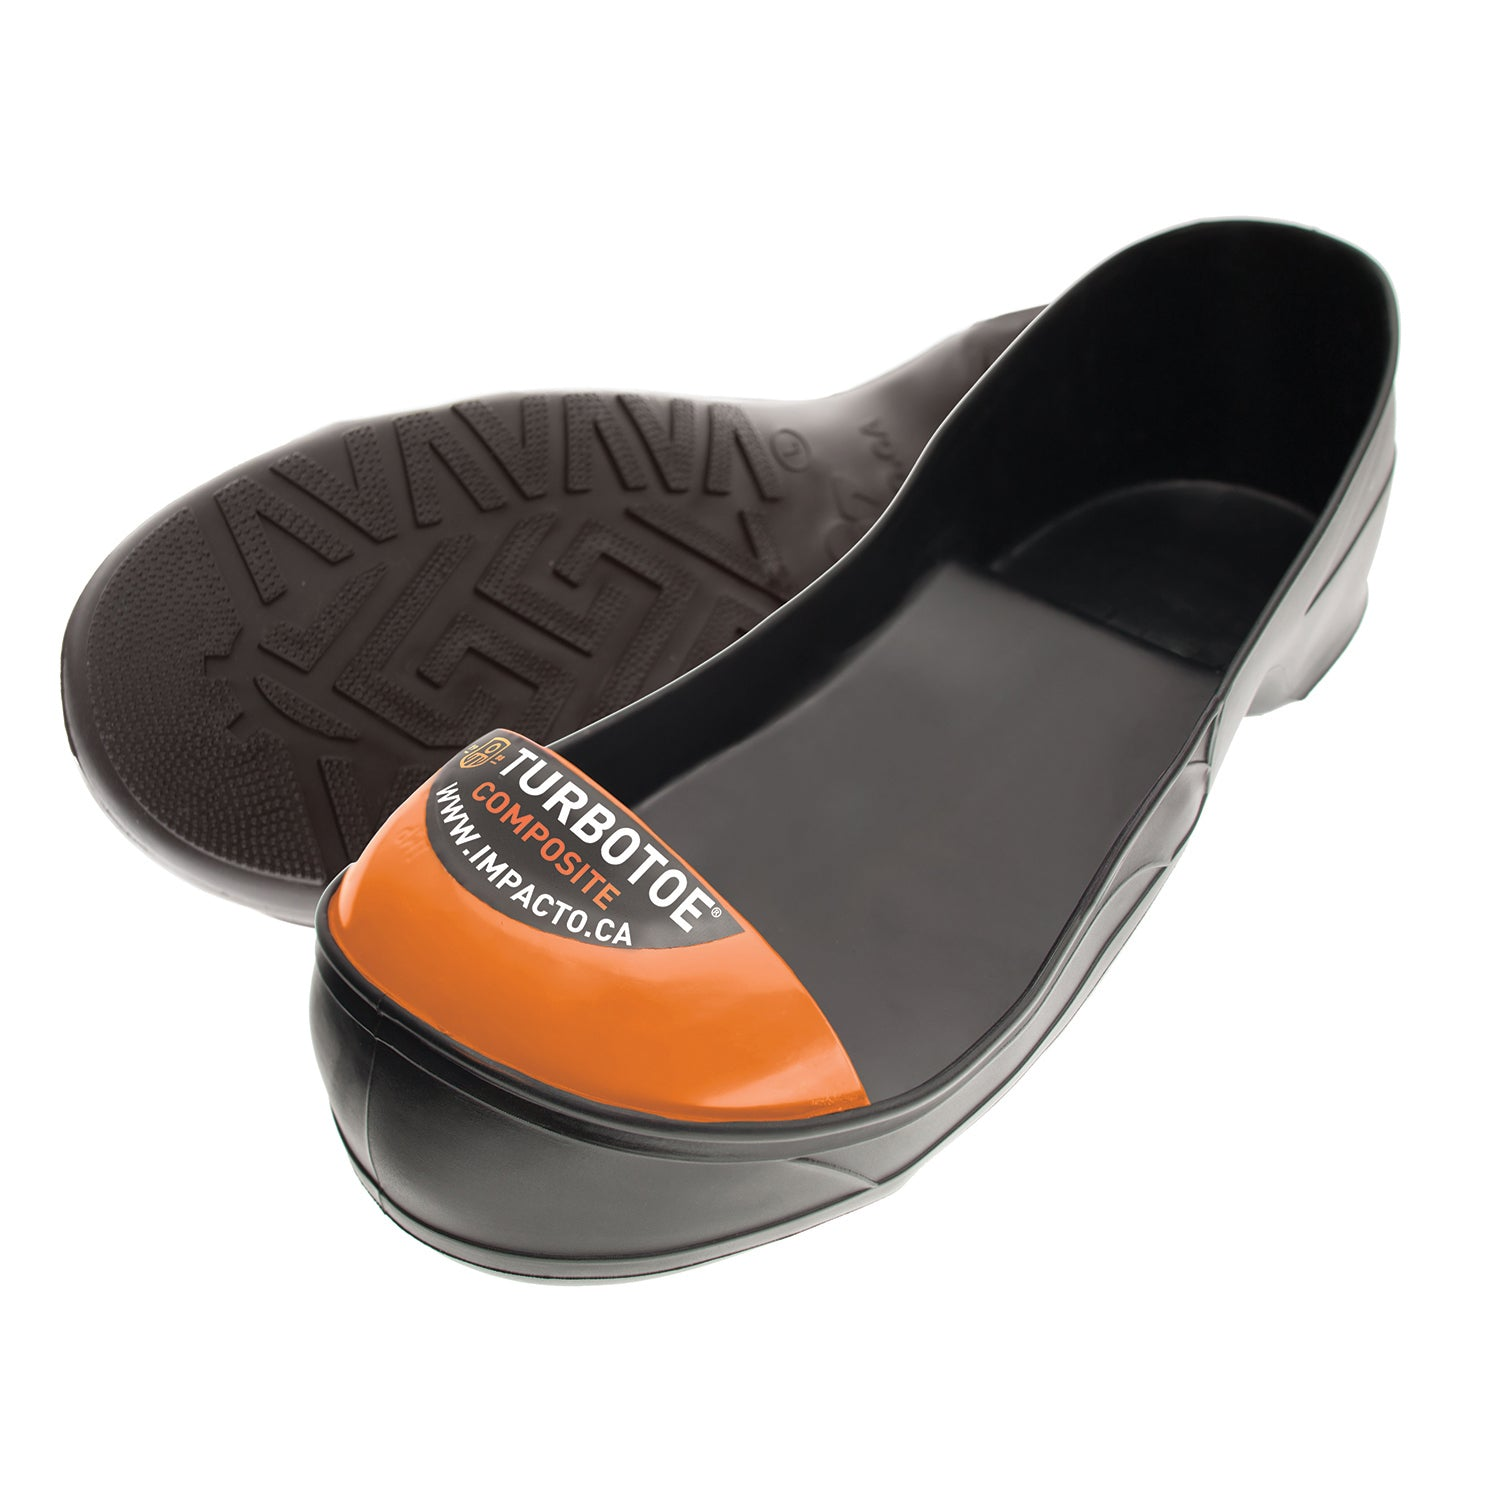 Non-conductive TURBOTOE COMP's are ideal for any working environment that carries a risk of toe damage or has a steel toe cap requirement but also has an EH or ESD requirement as they minimize the risk of static discharge or static shock